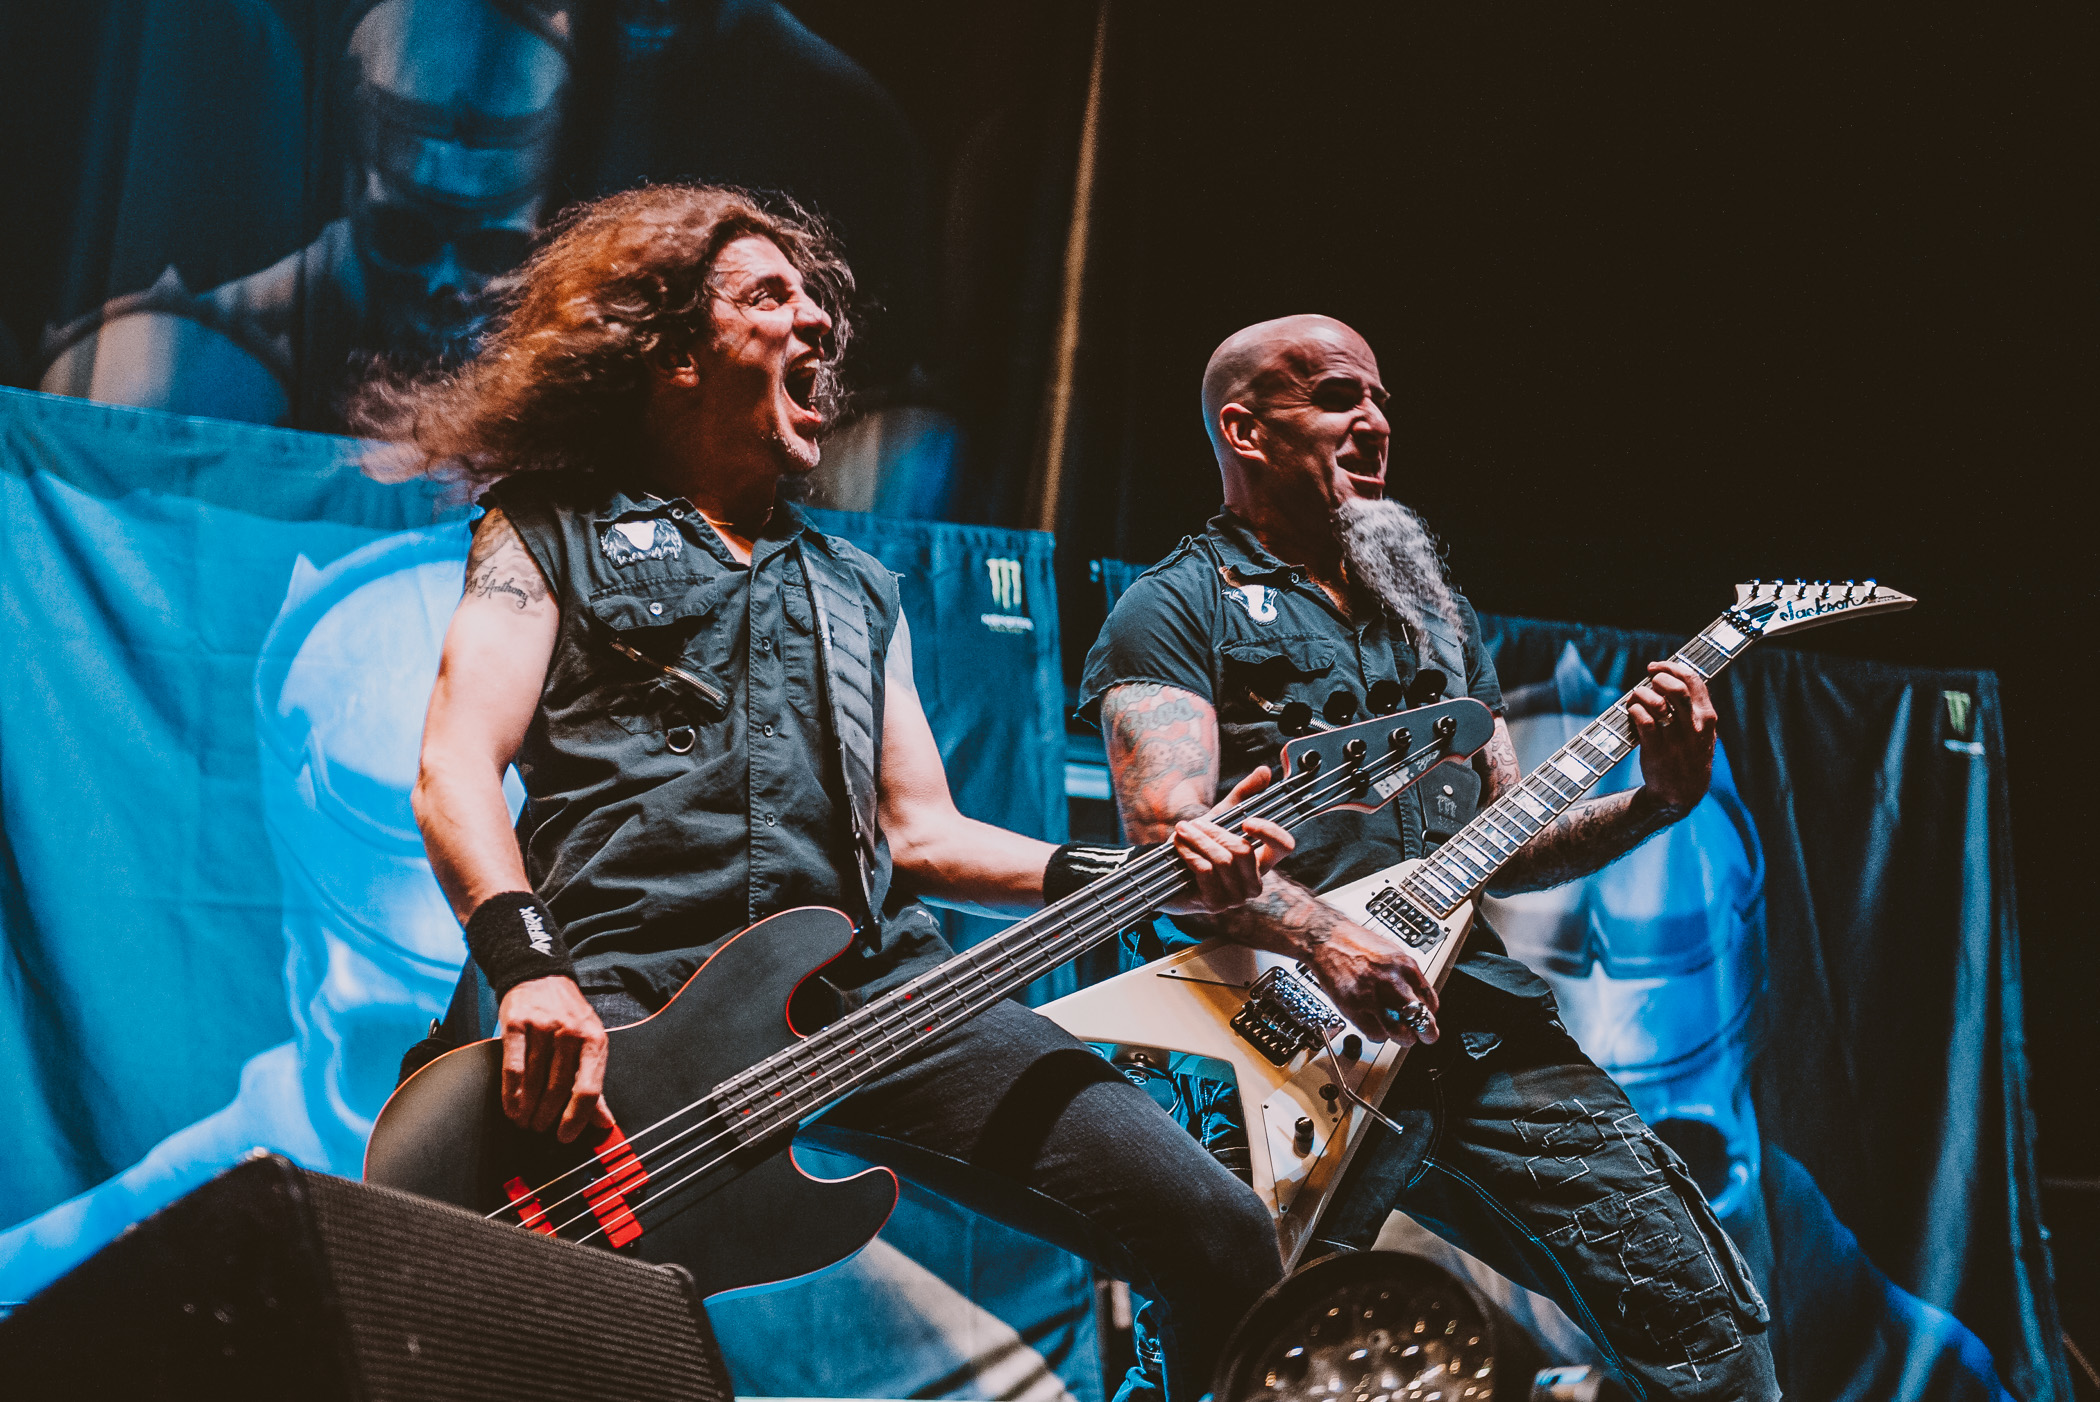 3_Anthrax-Pacific_Coliseum-Timothy_Nguyen-20180516-17.jpg